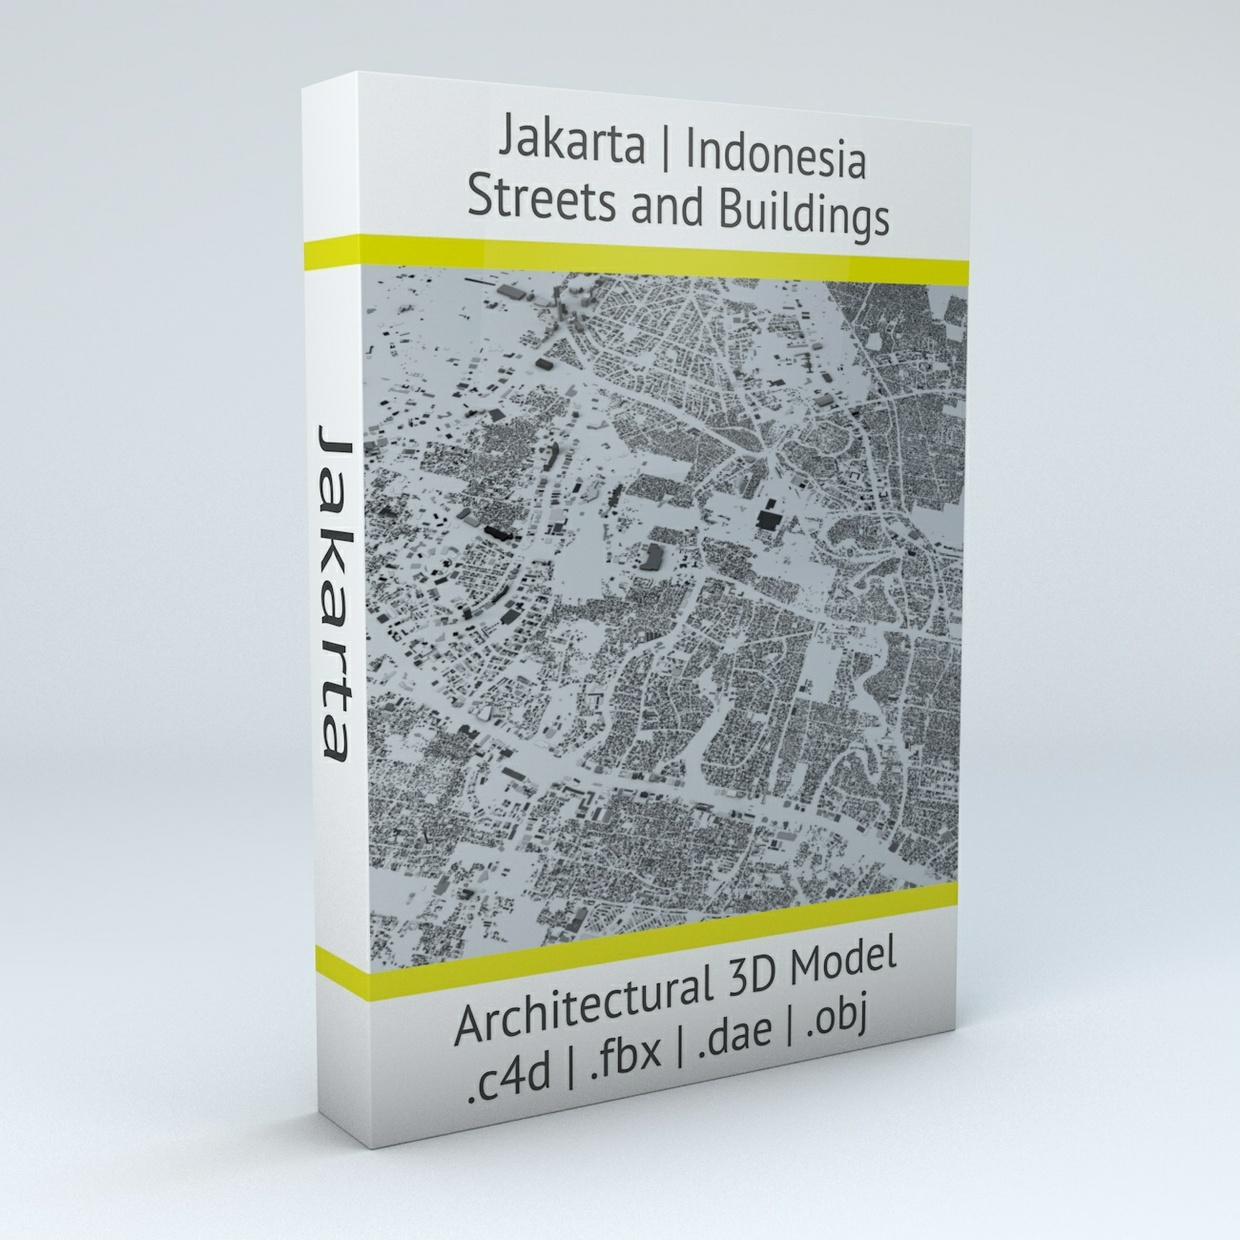 Jakarta Streets and Buildings Architectural 3D Model